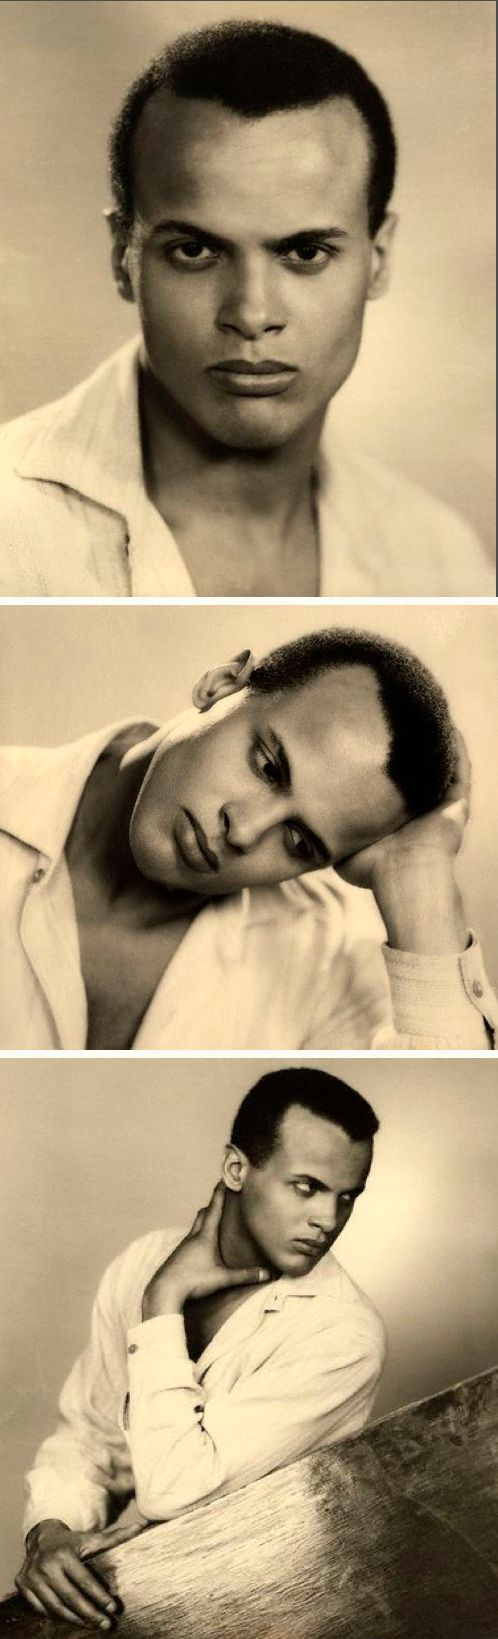 "Meet the extraordinary reluctant King of Calypso, Harry Belafonte. He's been named by some as such because of the way he made Calypso music popular. His first album titled ""Calypso"" was number four on Billboard's ""Top 100 Albums"". Harry is also the first Black to win an Emmy w/ his first solo TV special, Tonight W/ Belafonte. ""You are really responsible for the world in which you live"". Harry Belafonte"